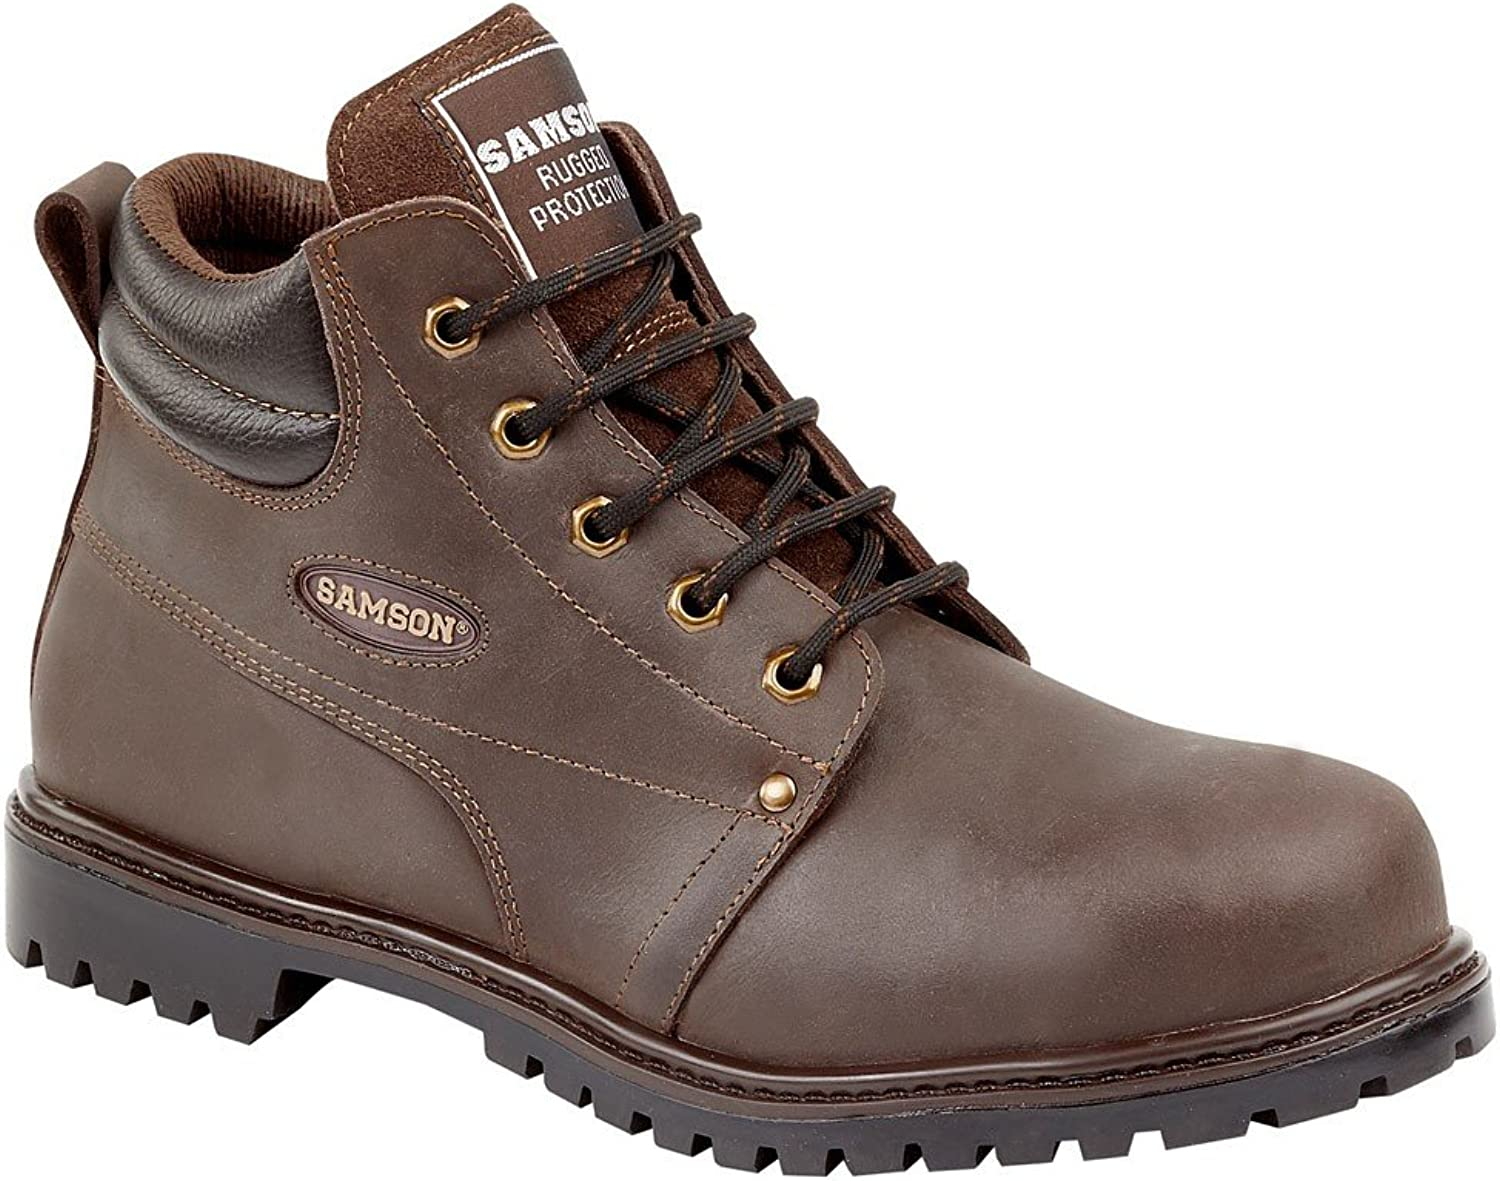 SAMSON 7704 WAXY BROWN 5 EYELET WORK BOOT S3 WITH STEEL TOECAP SIZES 6-12